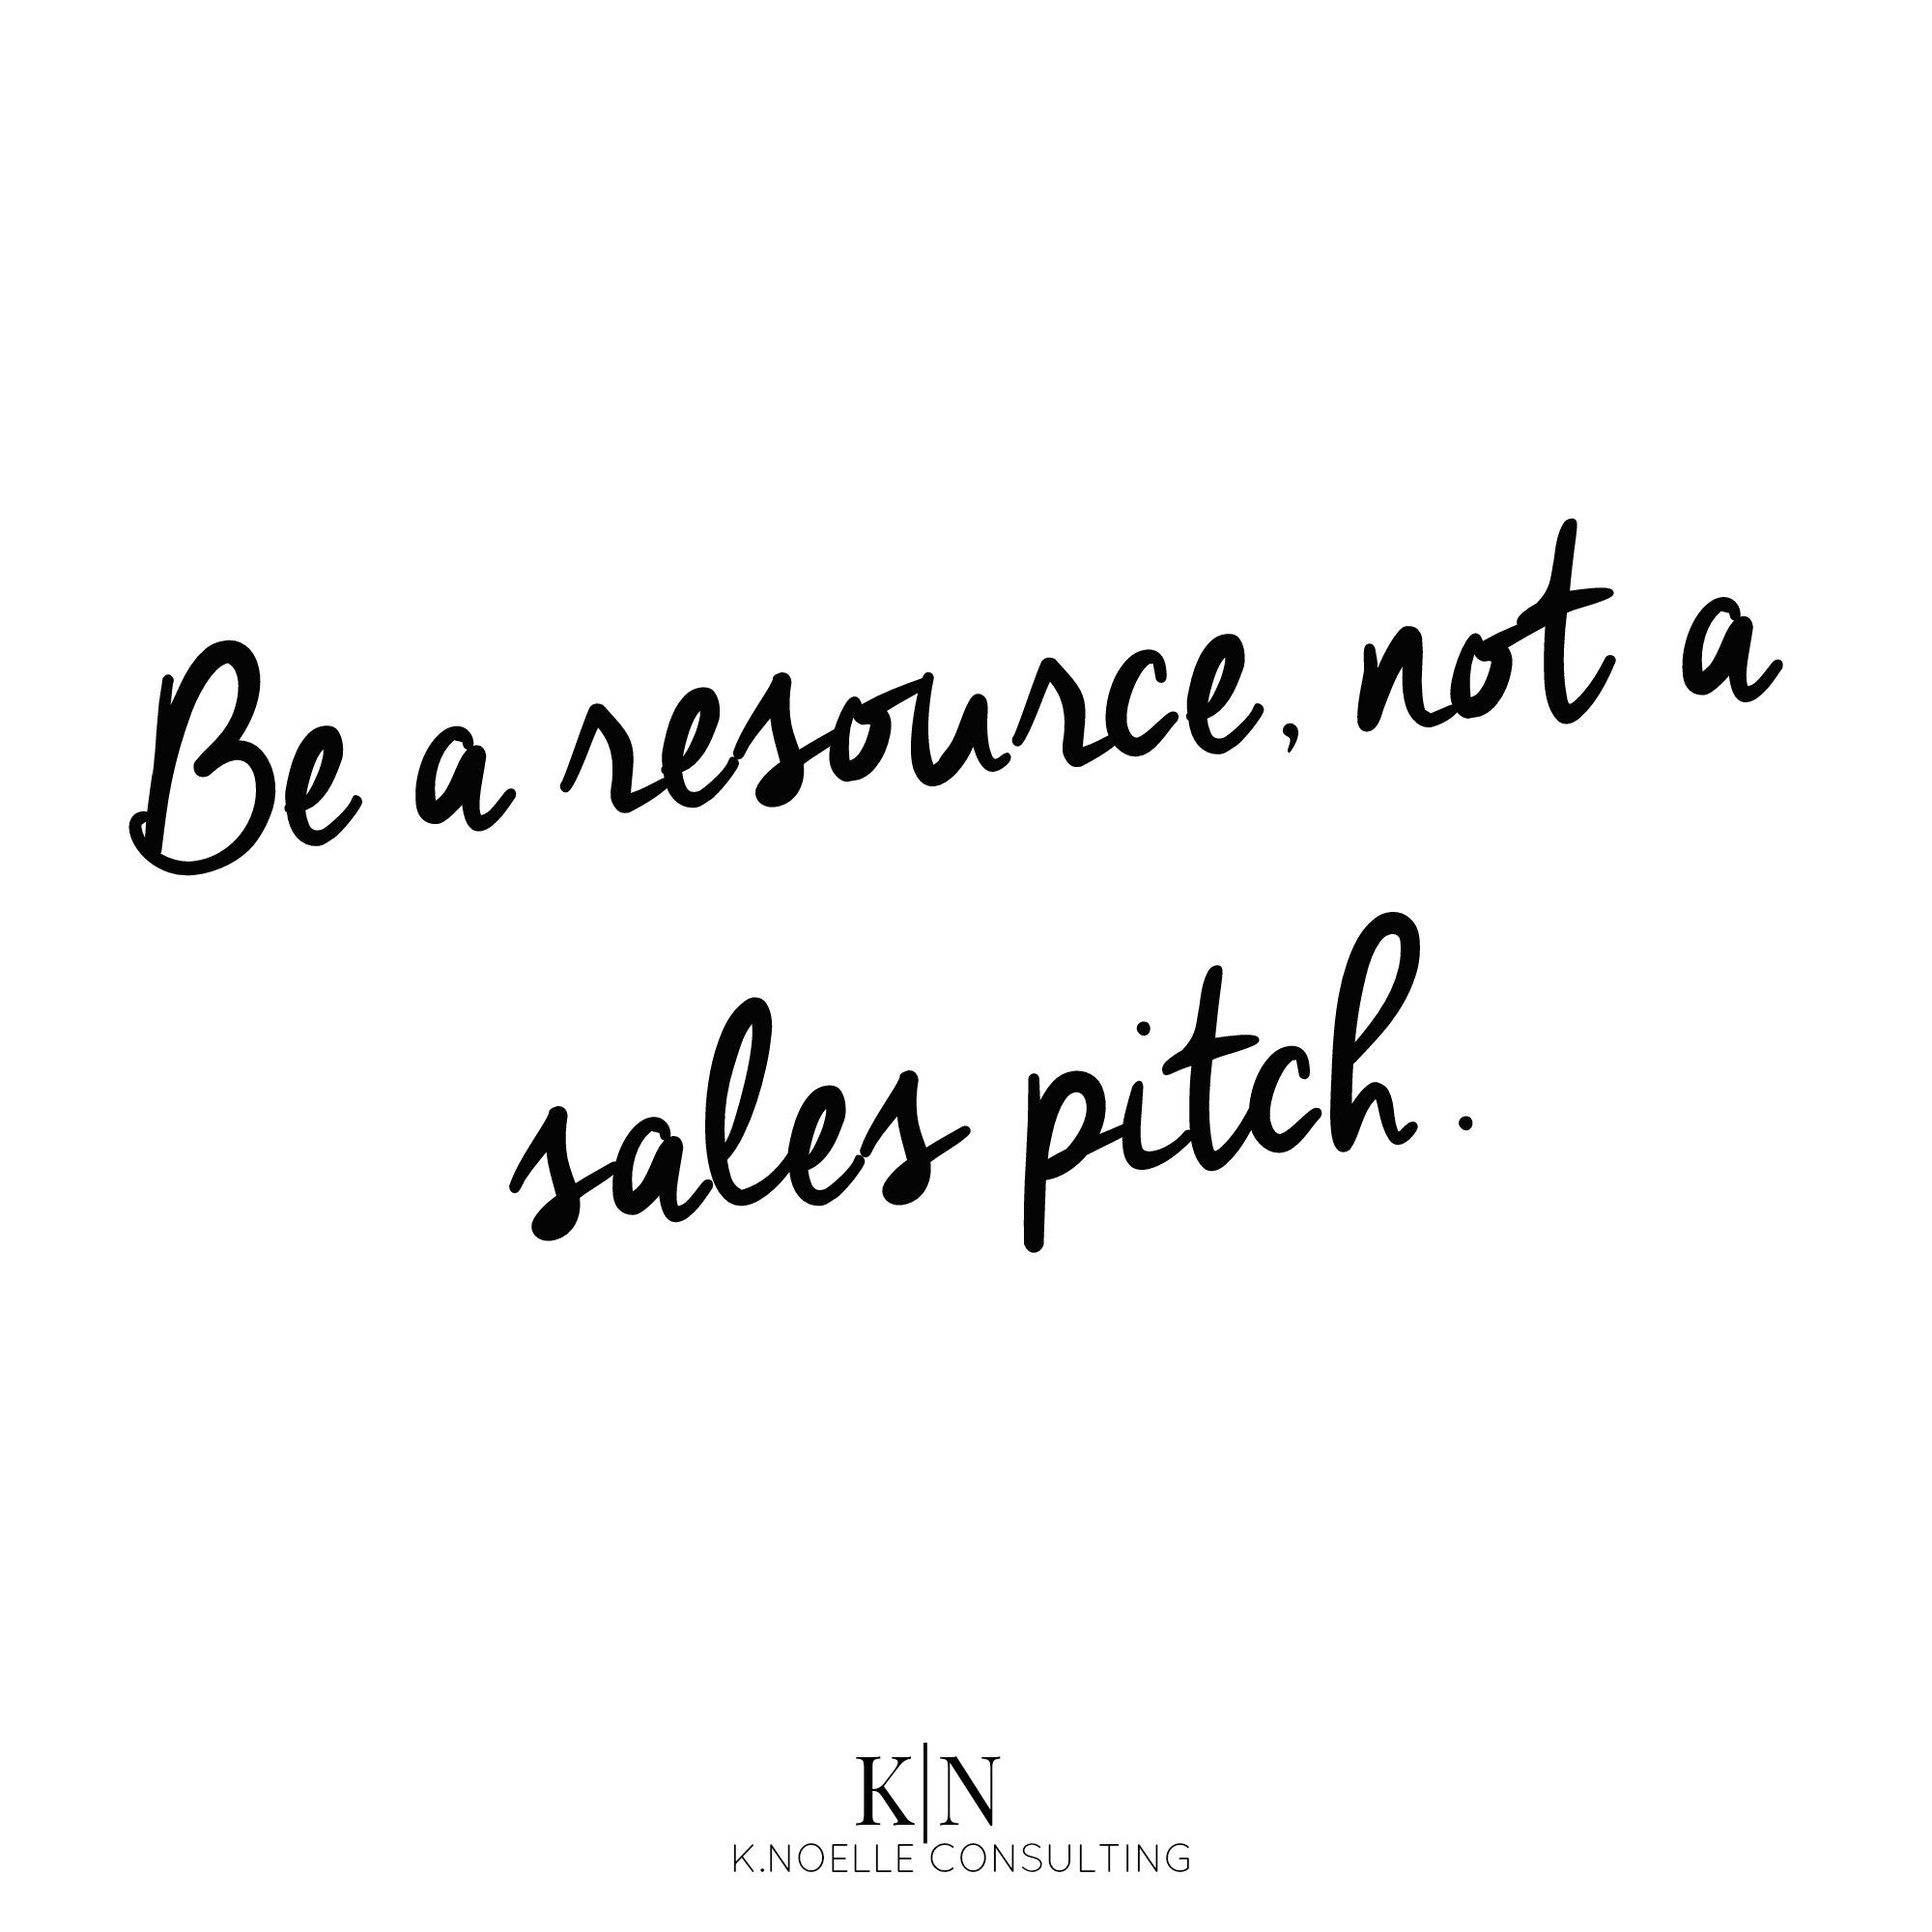 Be a resource not a sales pitch. To be a great